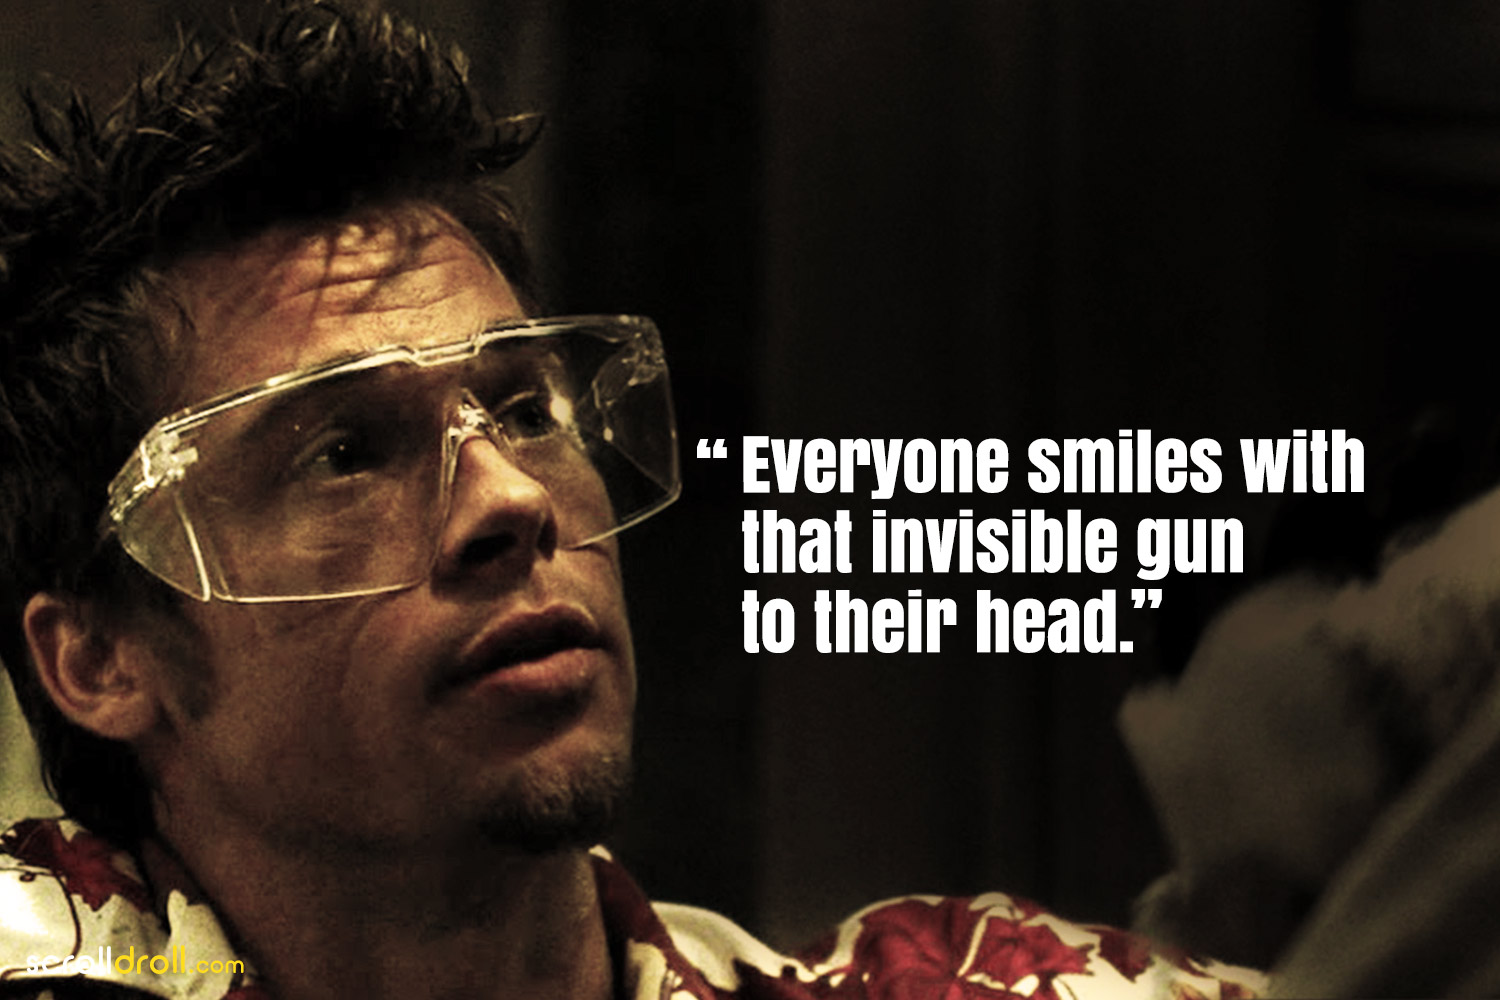 Fight Club Quotes- Everyone smiles with that invisible gun to their head